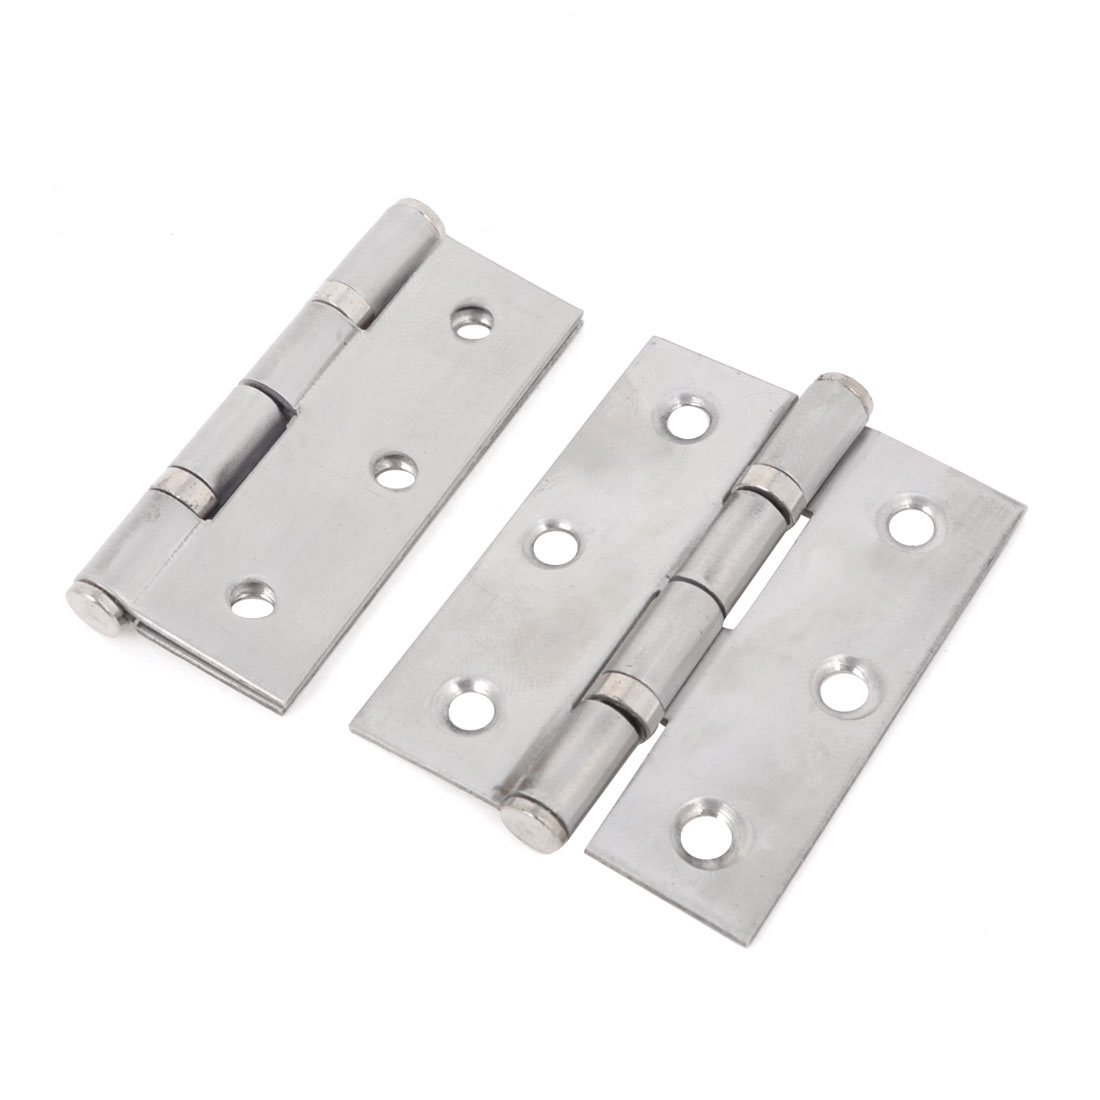 2 Pcs Silver Tone Stainless Steel Cabinet Door Butt Hinges 2""